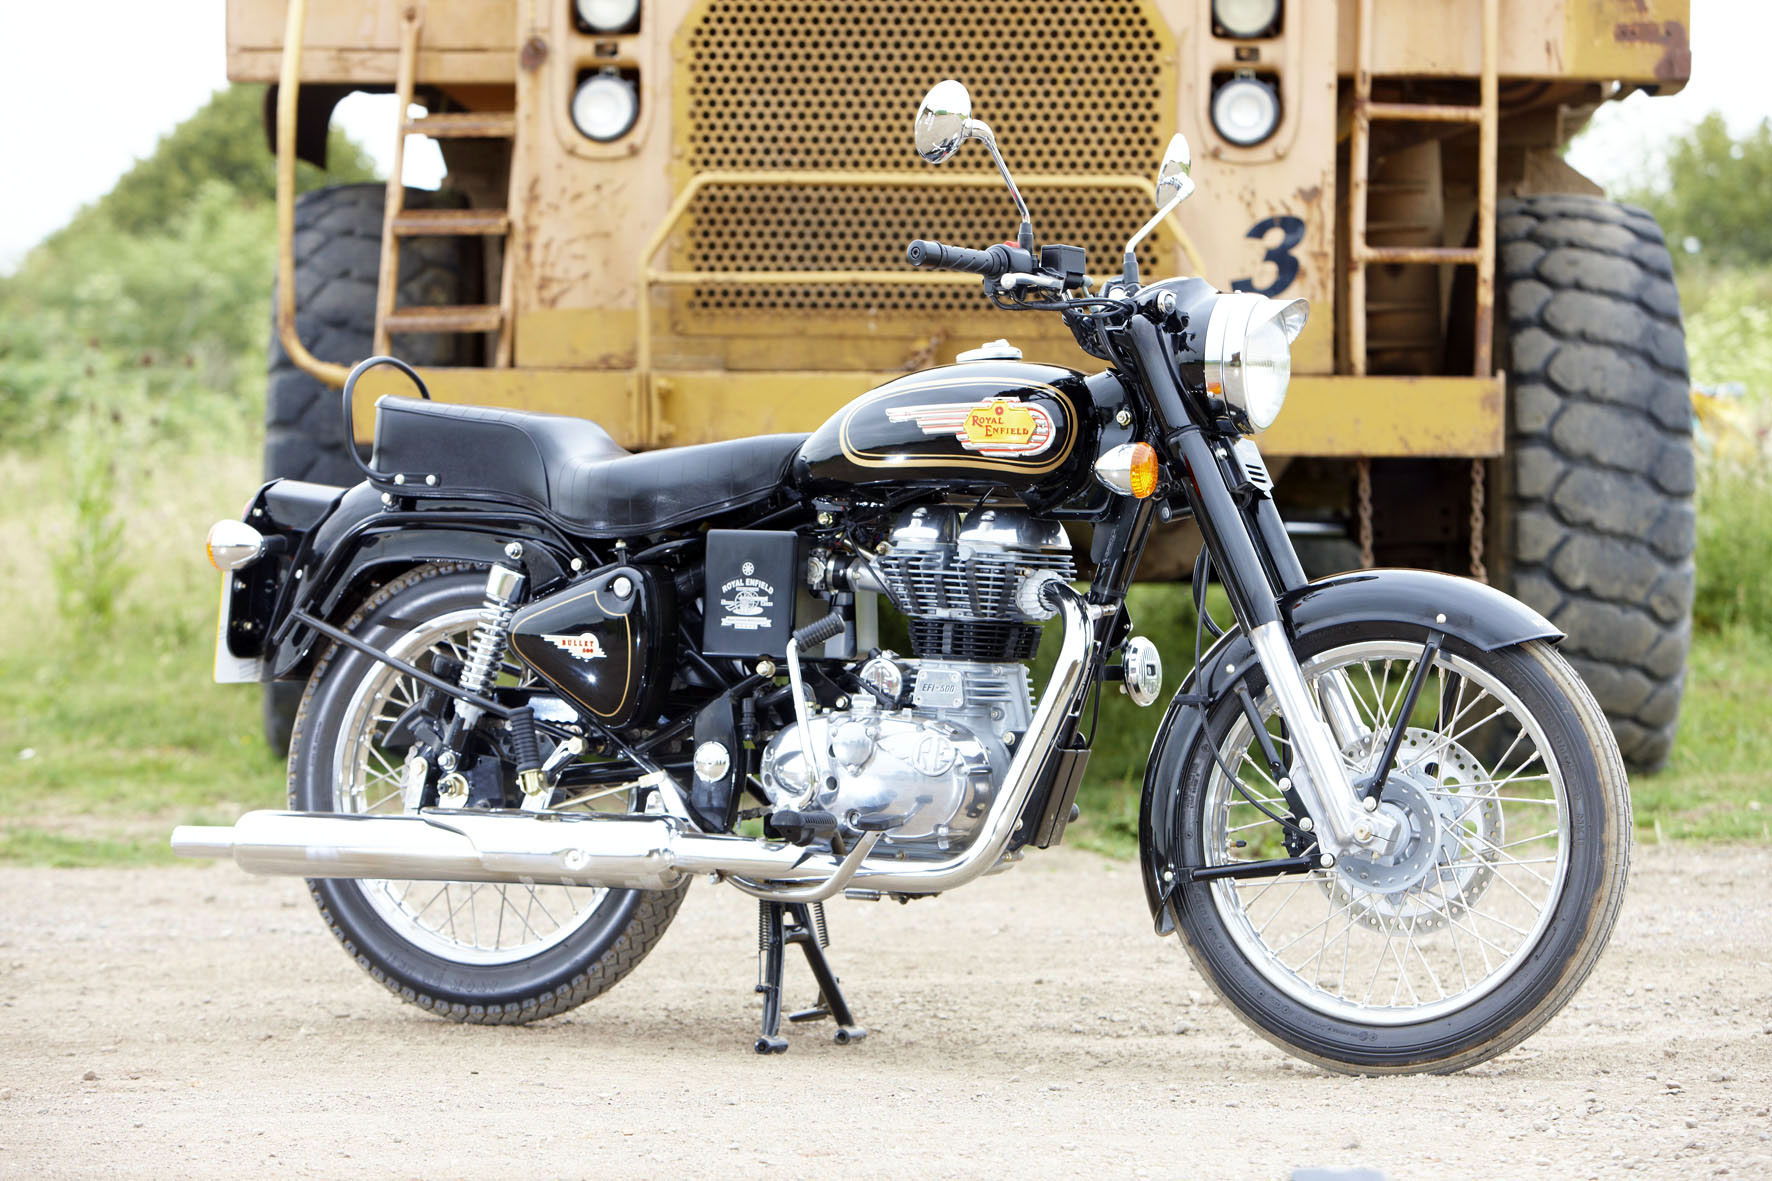 Royal Enfield Bullet 350 Army 1989 images #122477